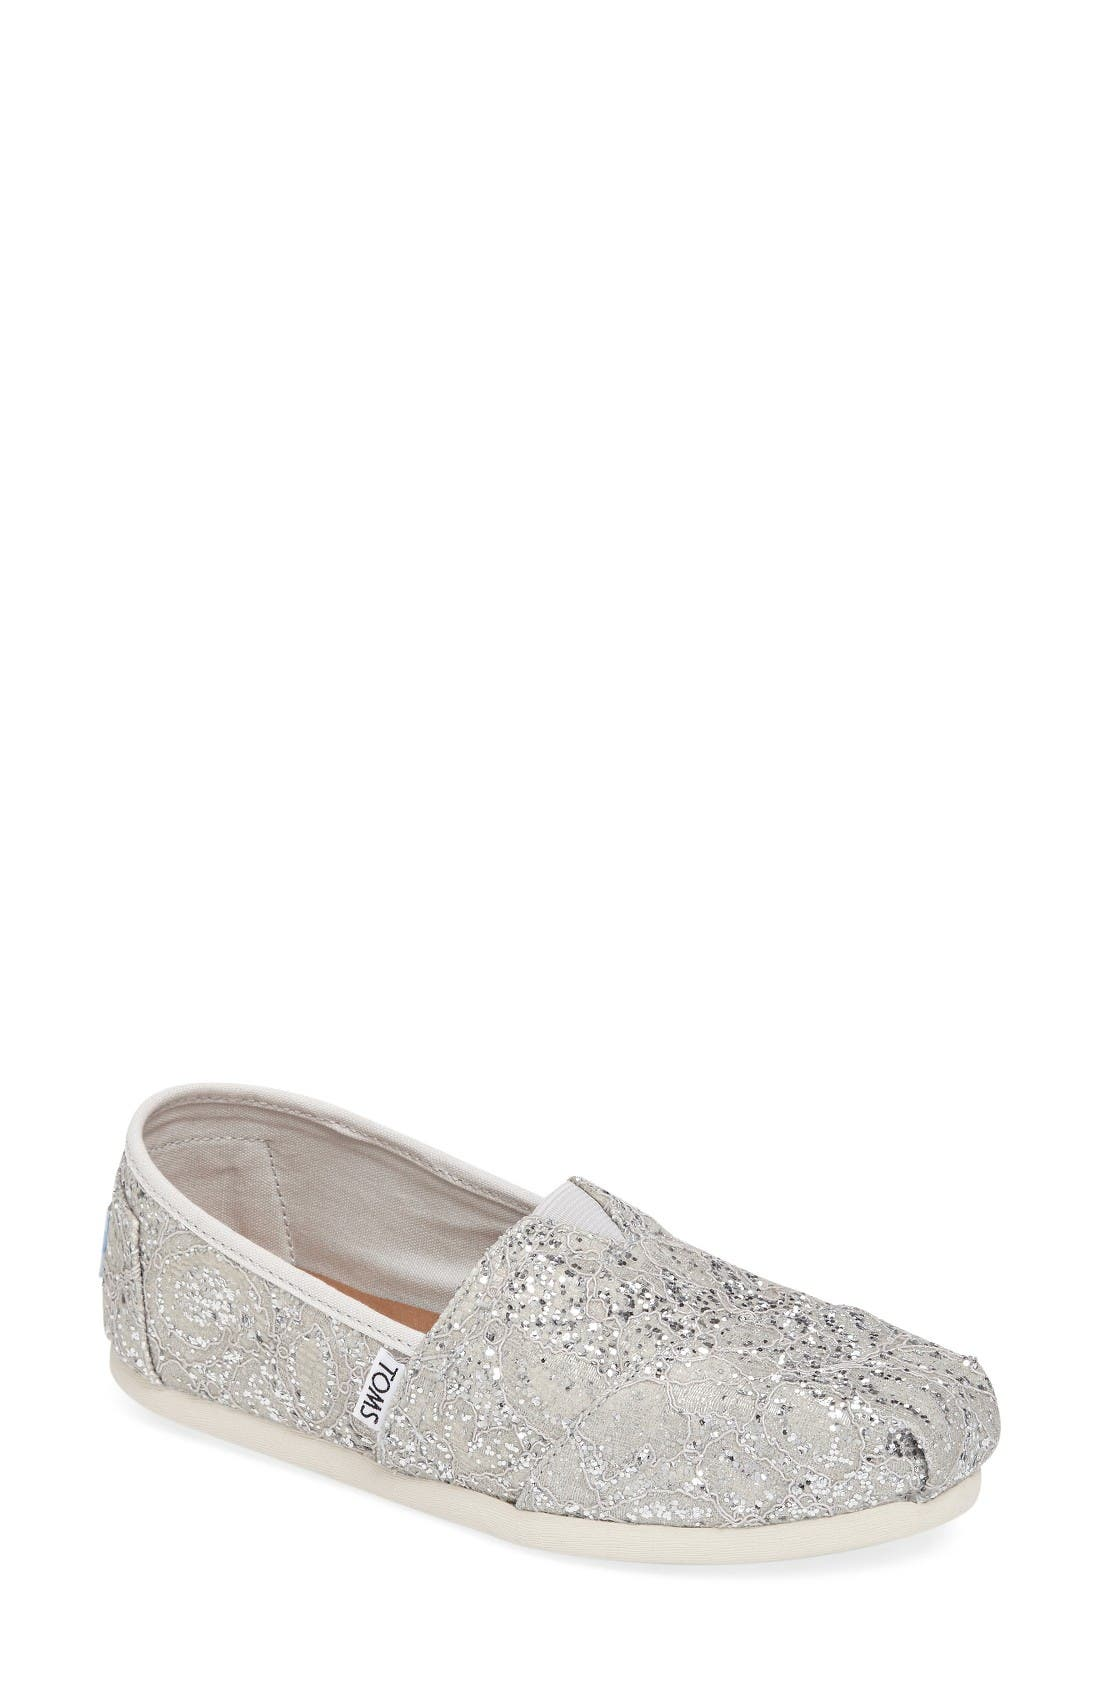 Alternate Image 1 Selected - TOMS 'Classic Lace Glitz' Slip-On (Women)